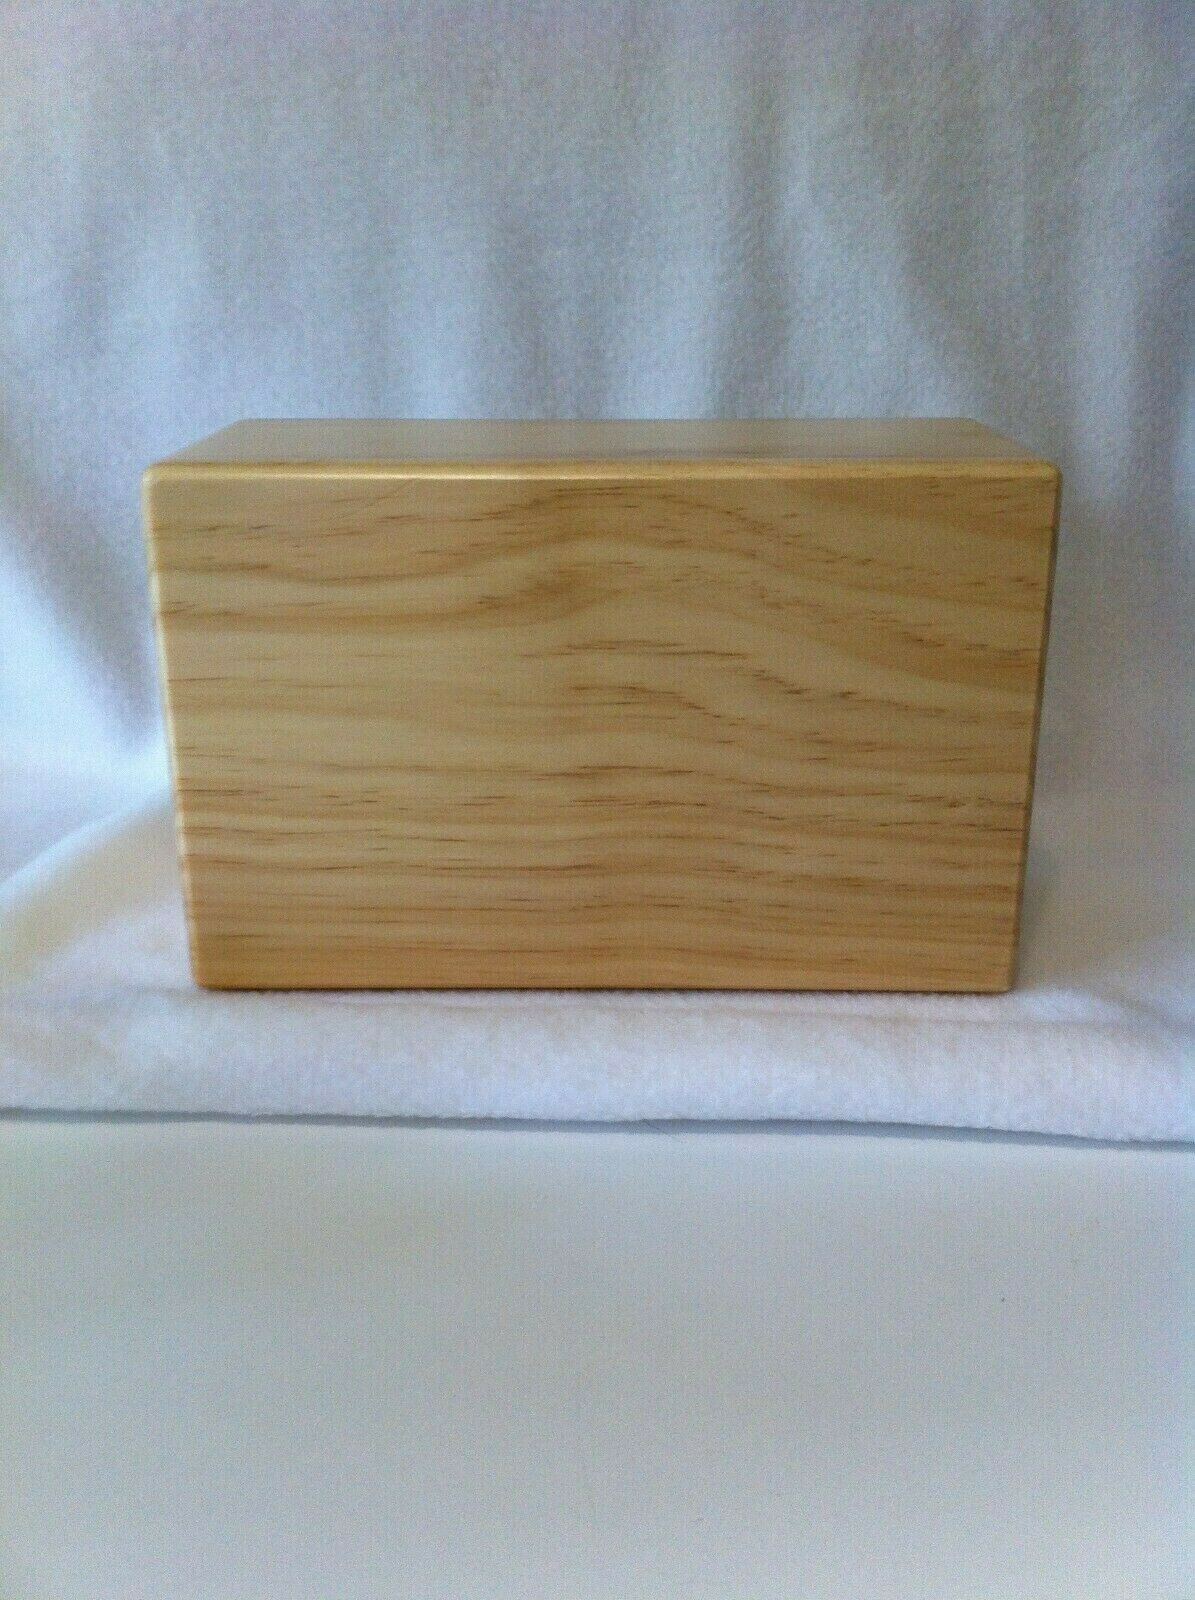 1pc Yoga Block Wooden Sports Brick Pilates Gym Fitness Workout New